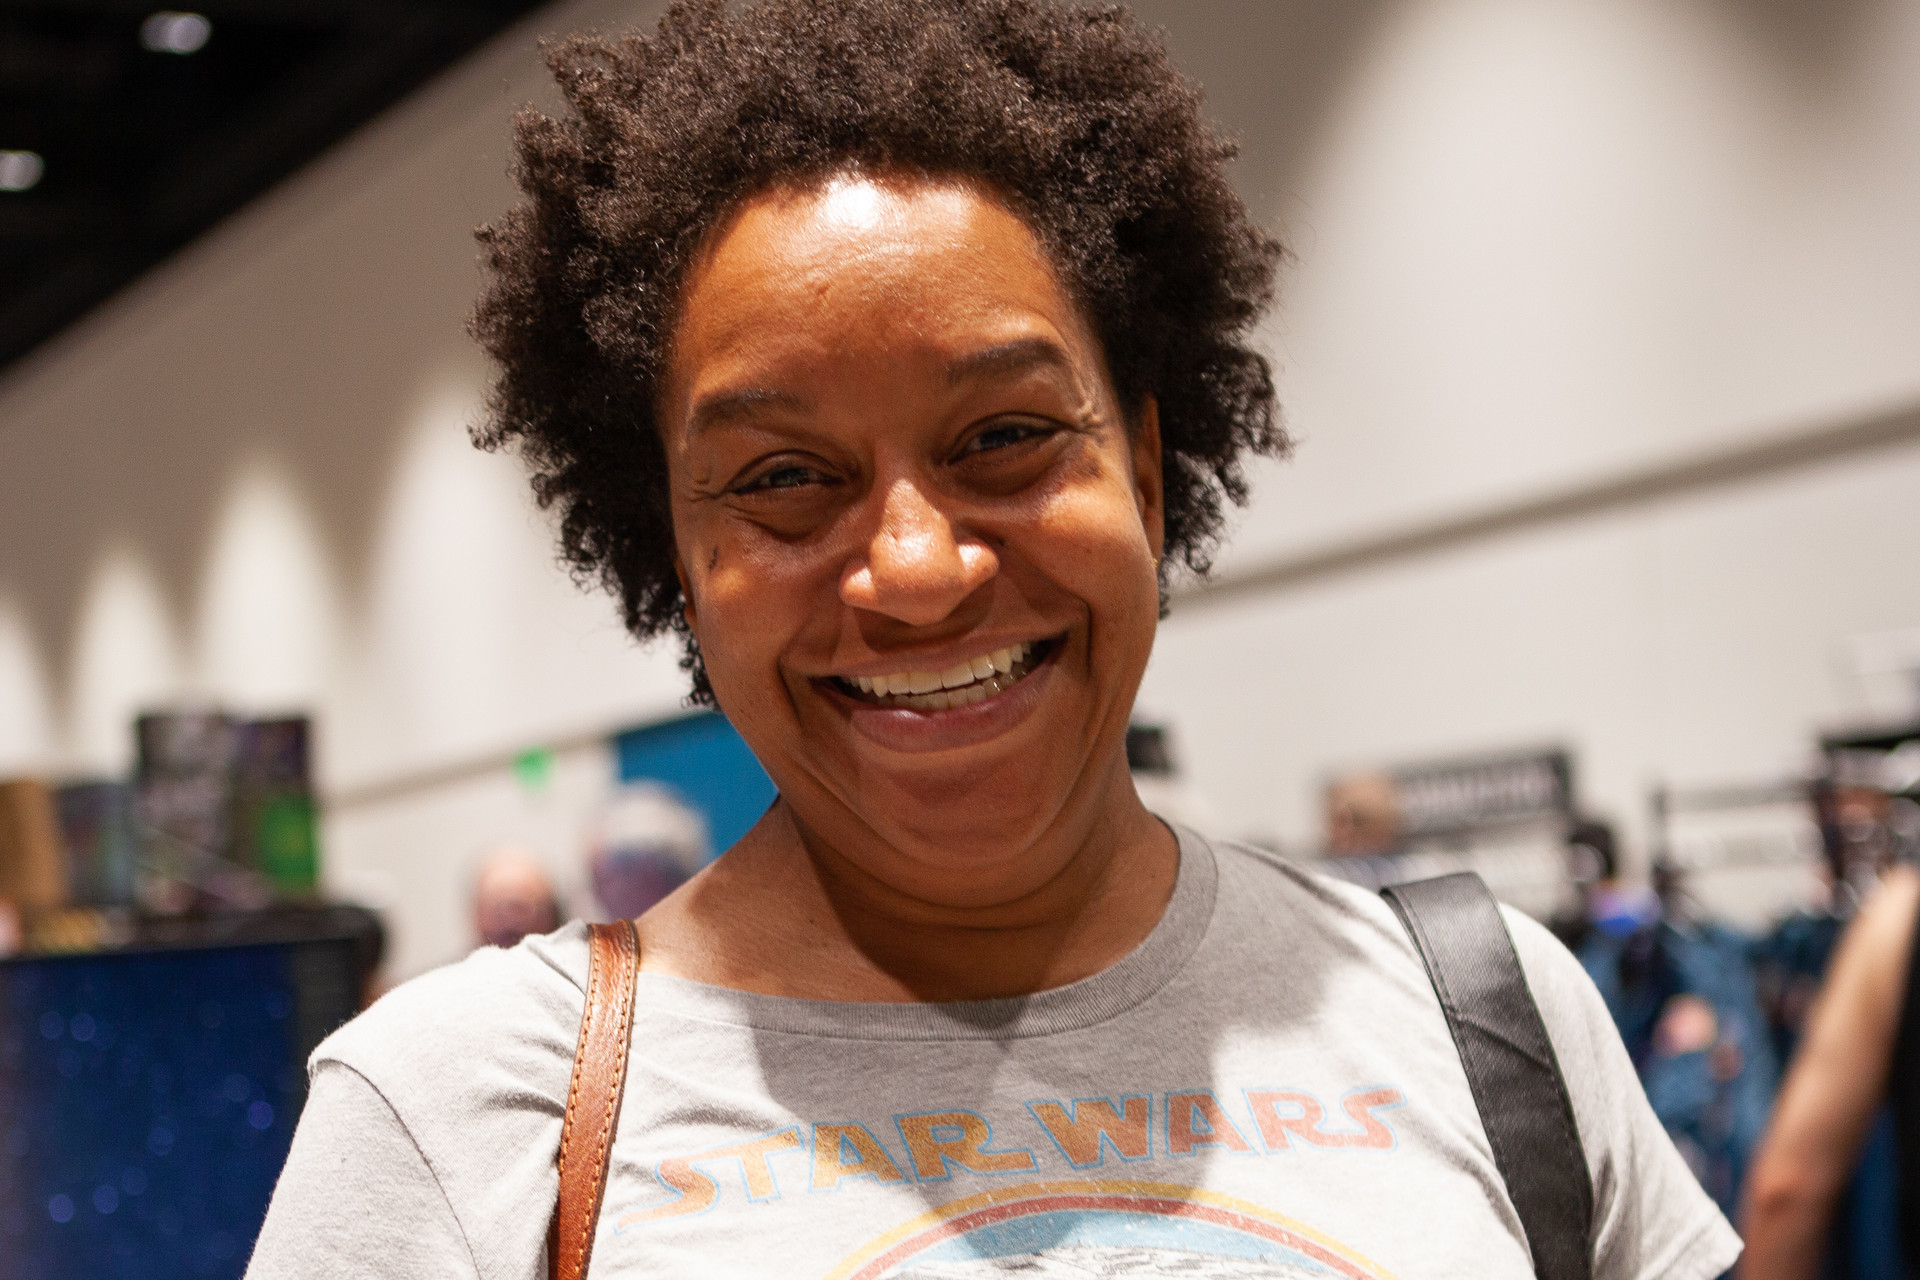 """Jamila English, on the hunt for a job in the sciences, recalled a famous quote from actress, comedian and  author Whoopi Goldberg: """"Without Star Trek, people would still think there were no black people in the future.""""."""